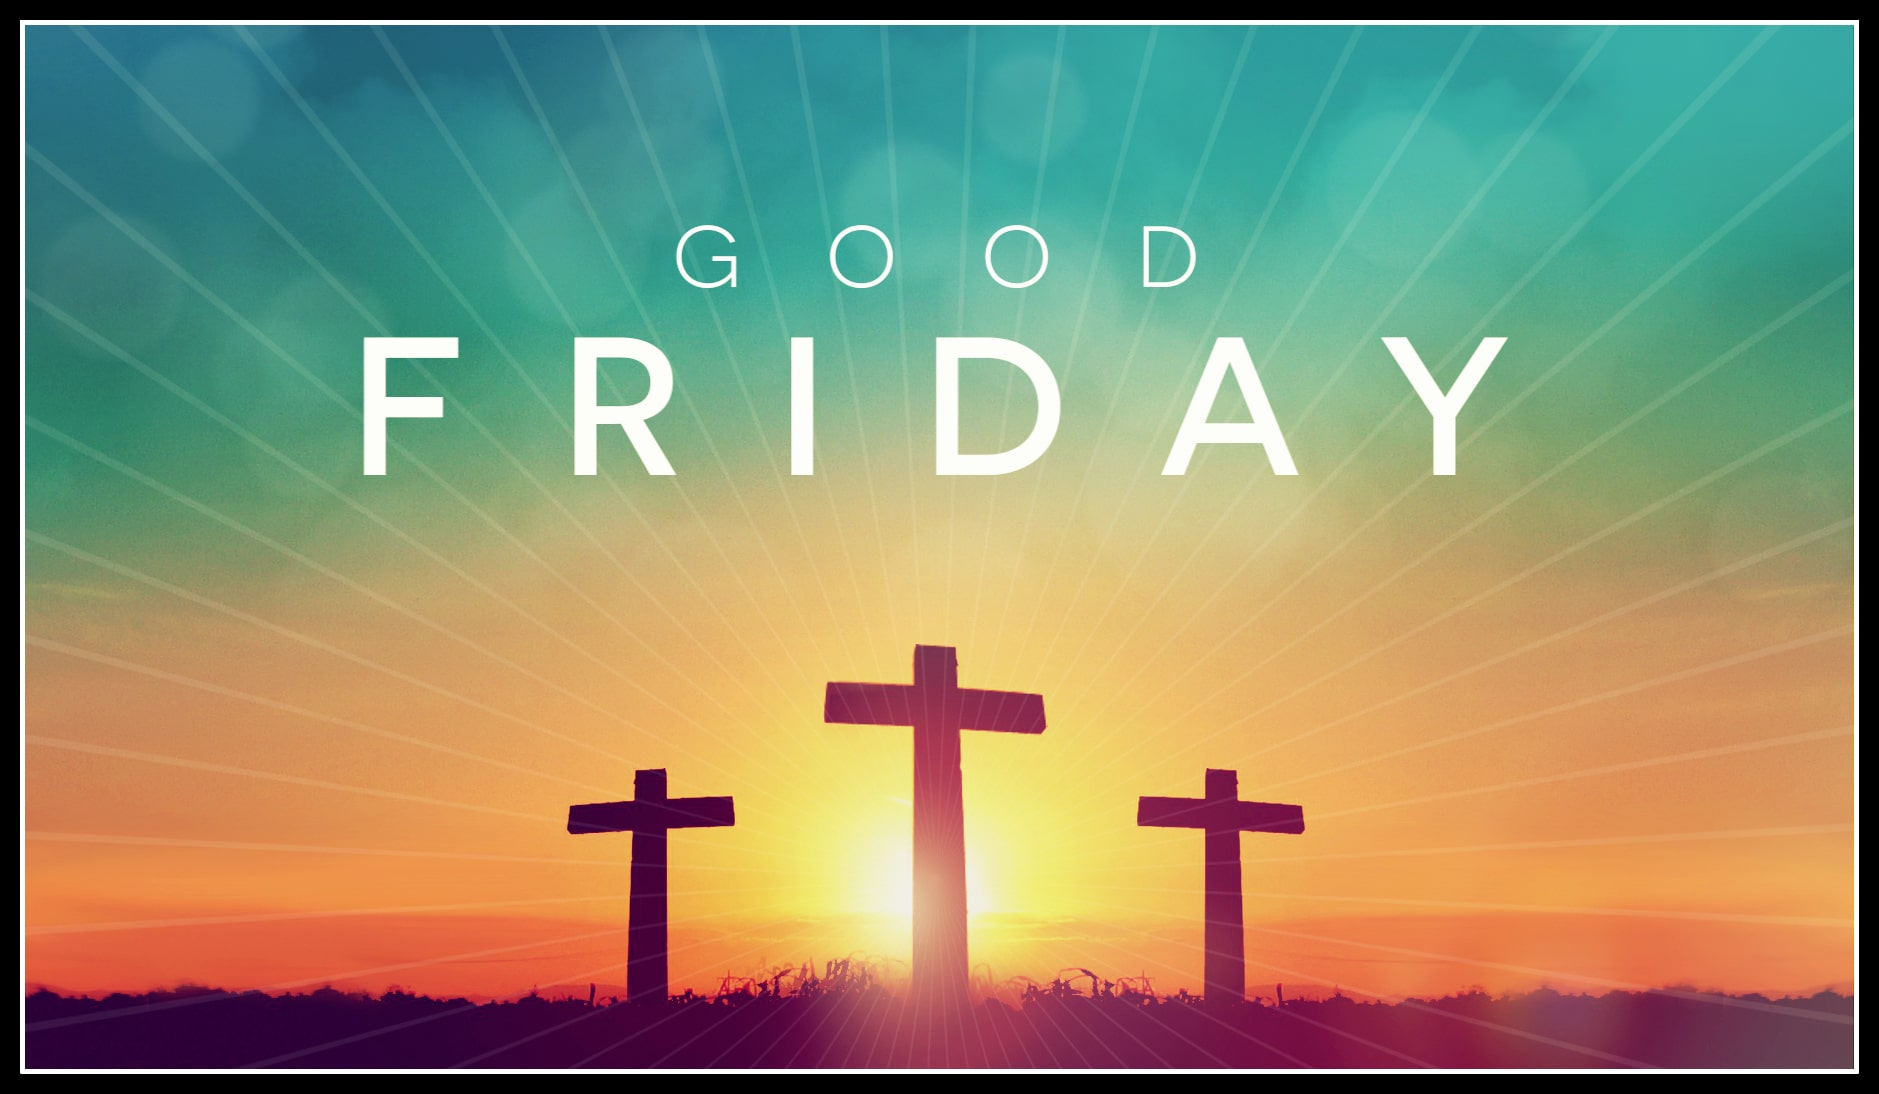 Good Friday 2017 HD Images